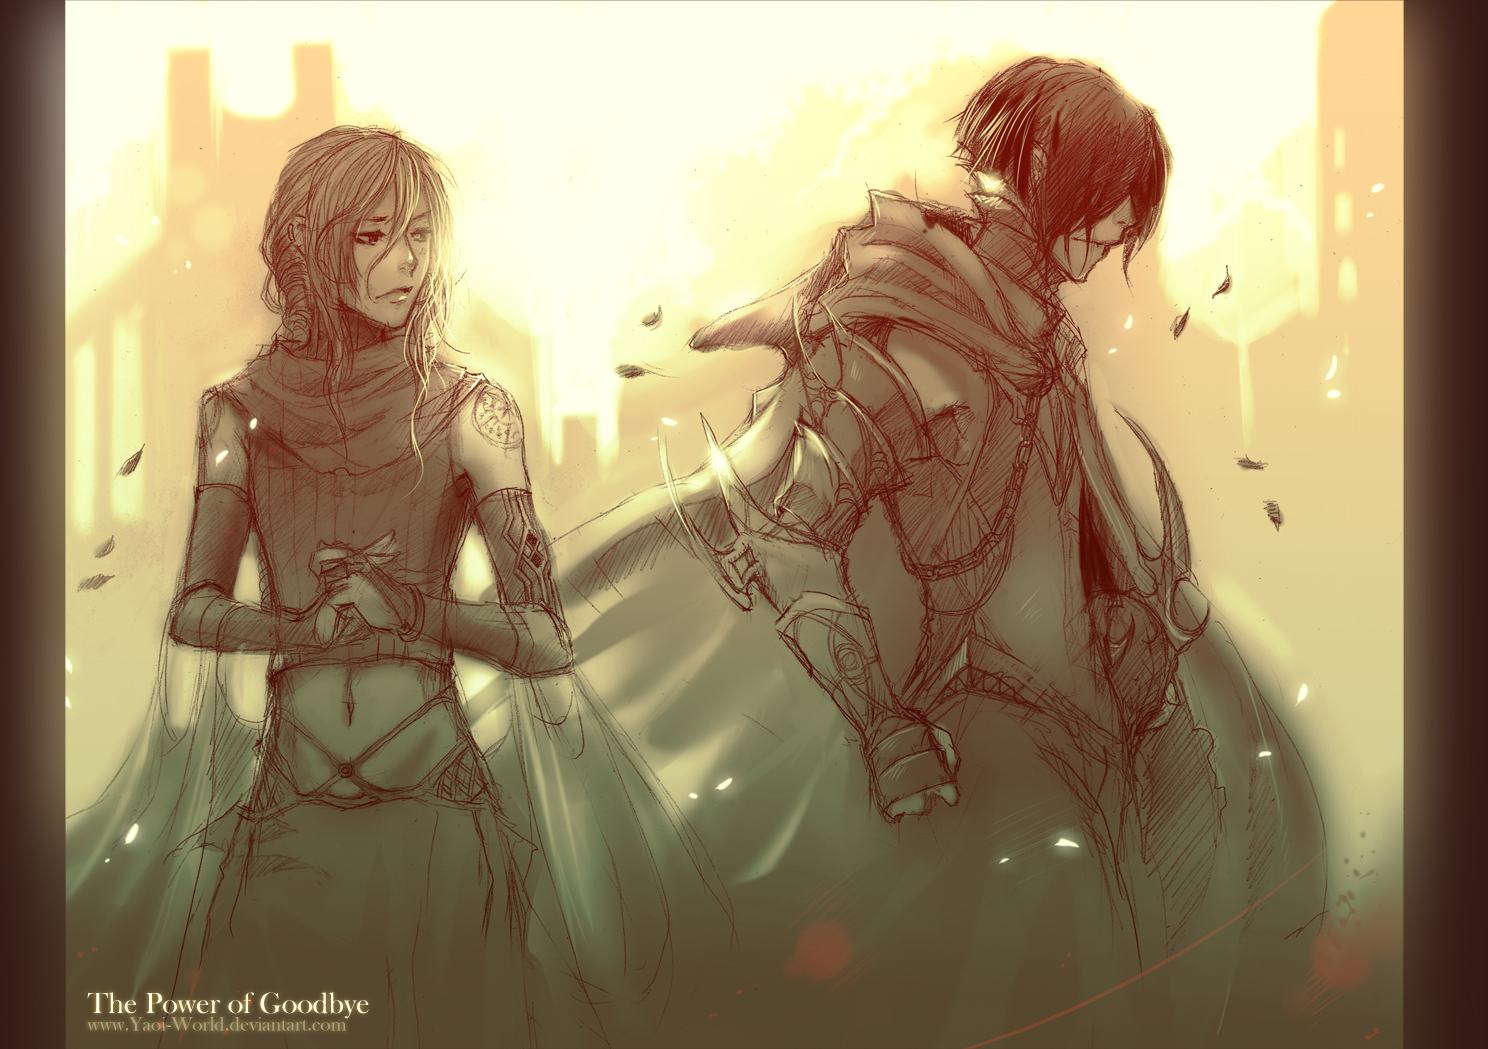 The Power of Goodbye by Yaoi-World